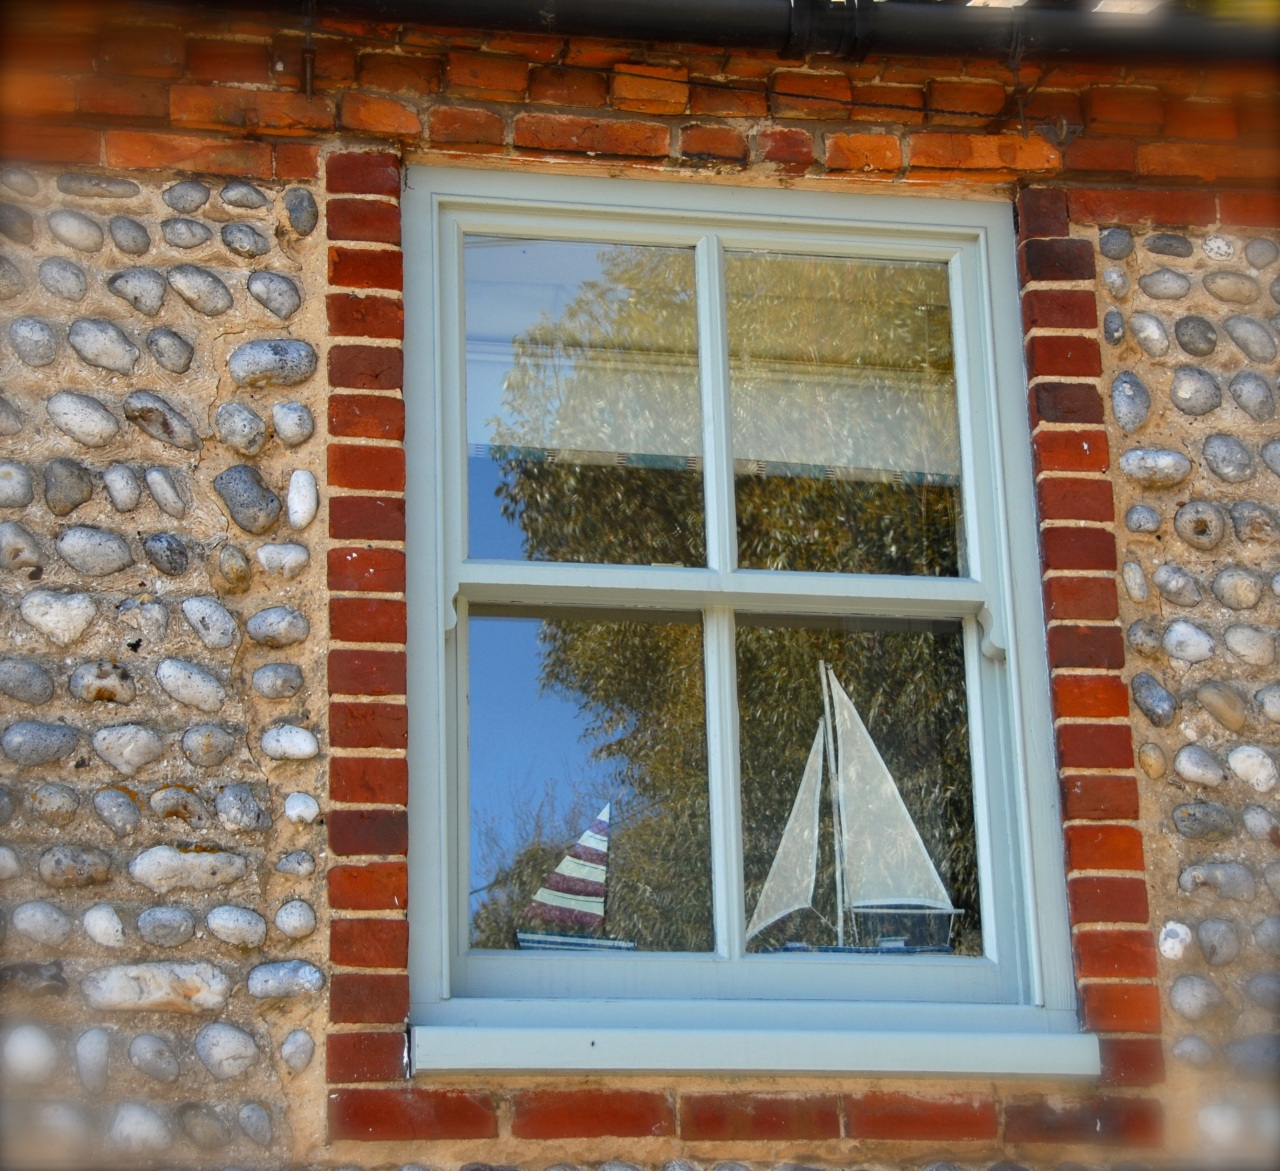 Window on The Fairstead, Cley next the Sea, Photo: Hanne Siebers